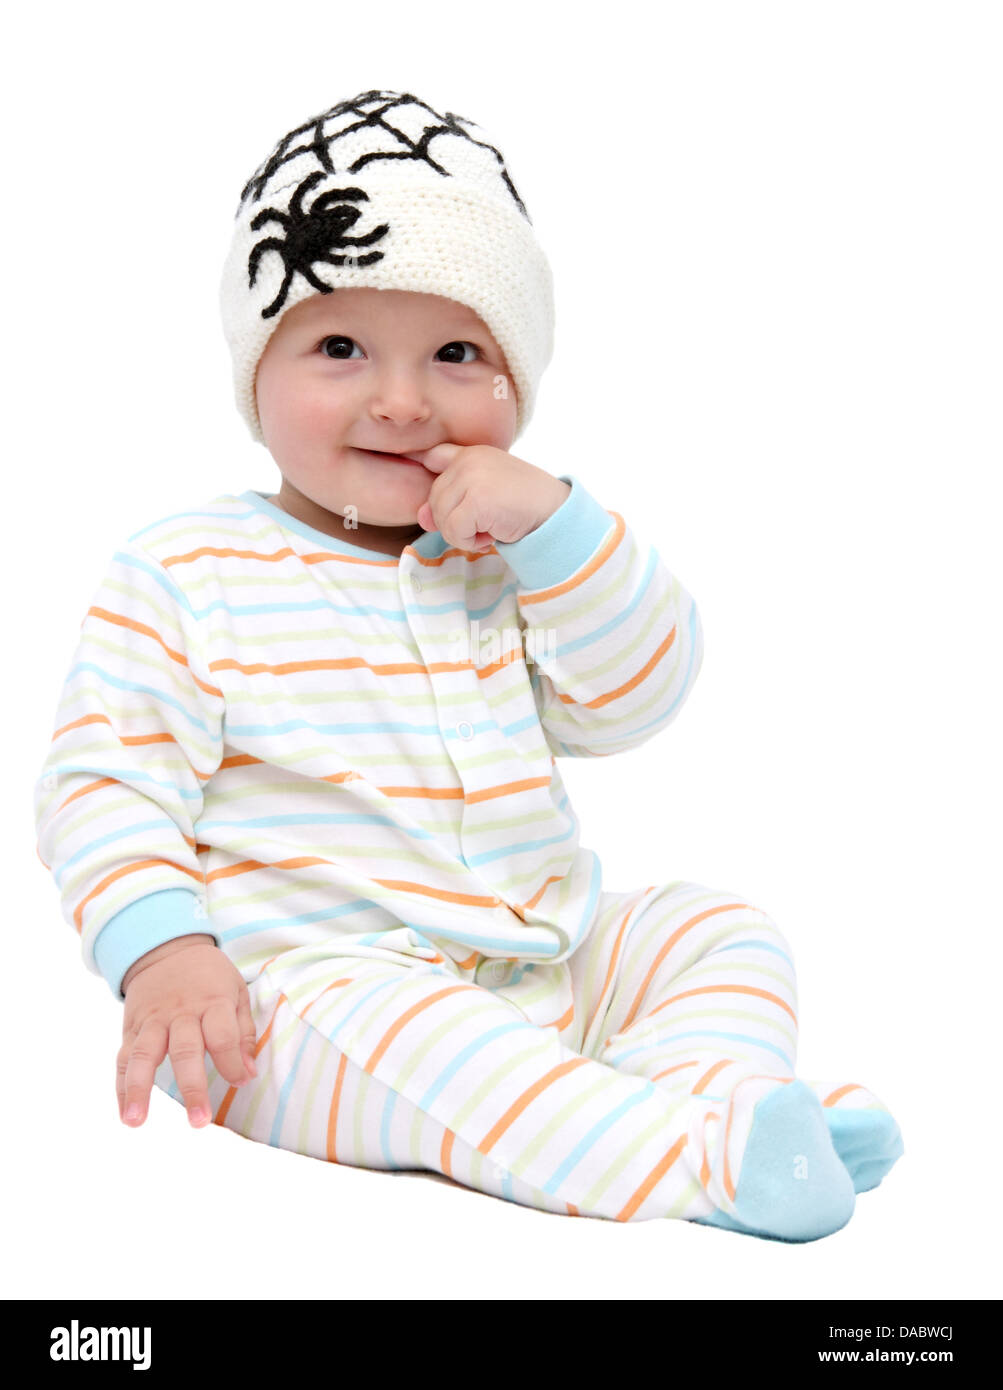 beautiful baby boy with knitted hat sitting - Stock Image